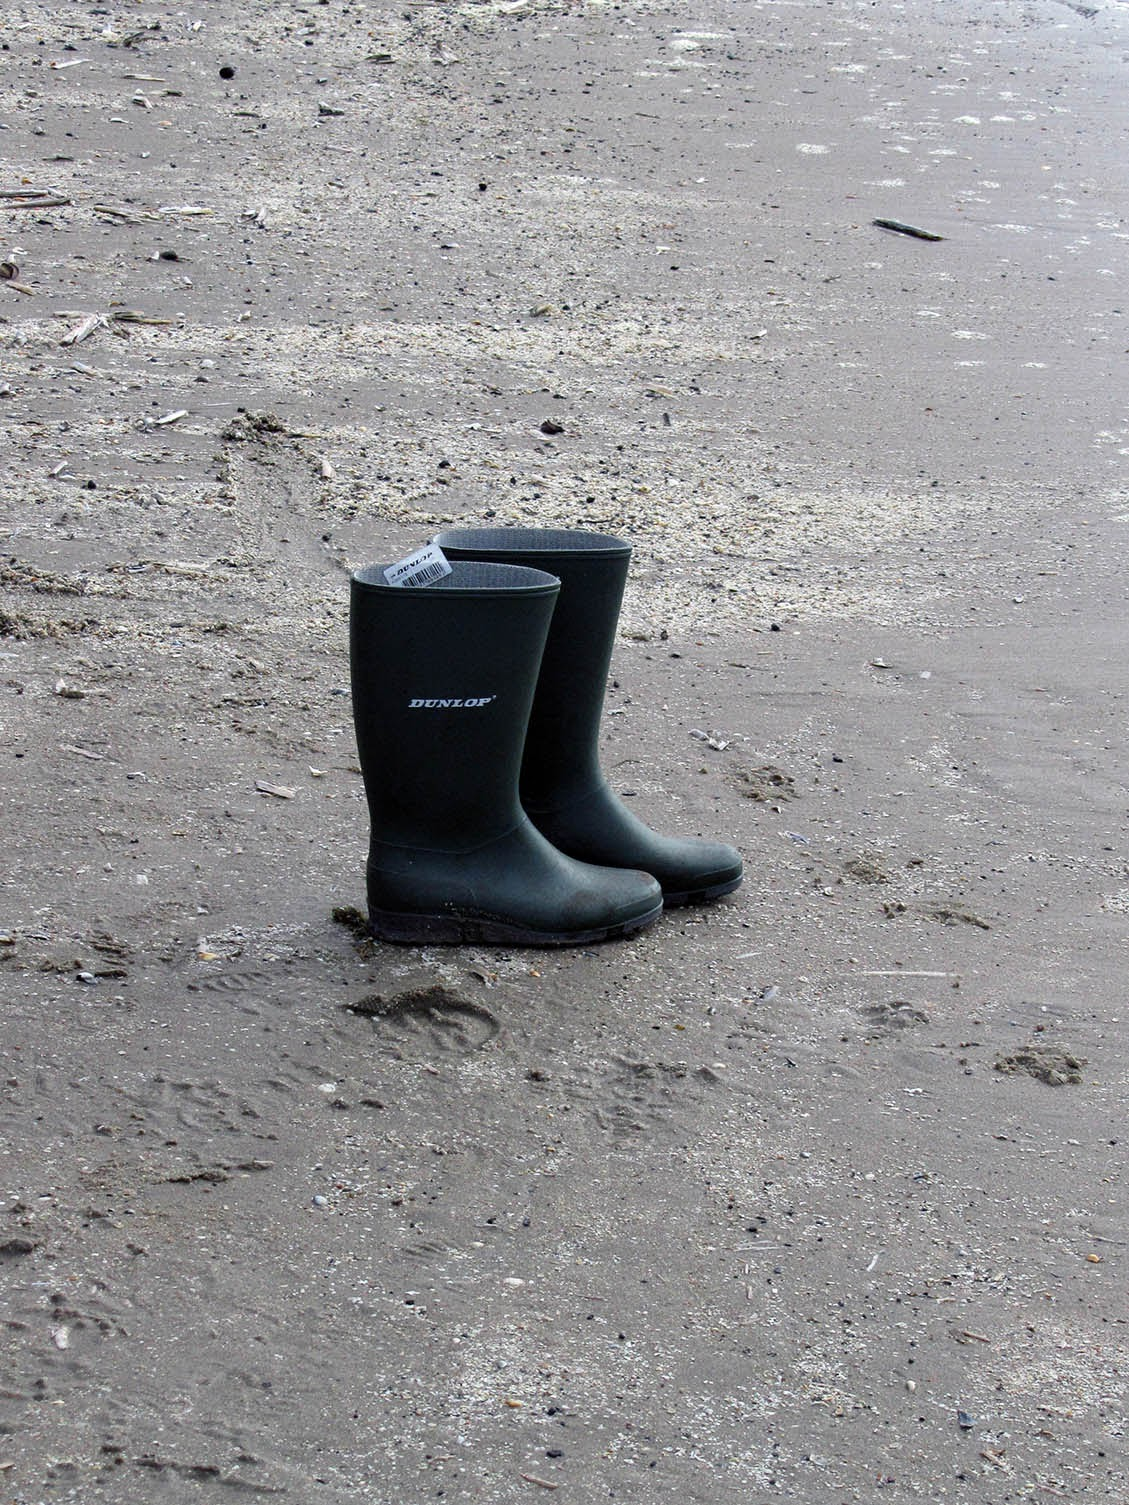 simplicity: two boots on the beach